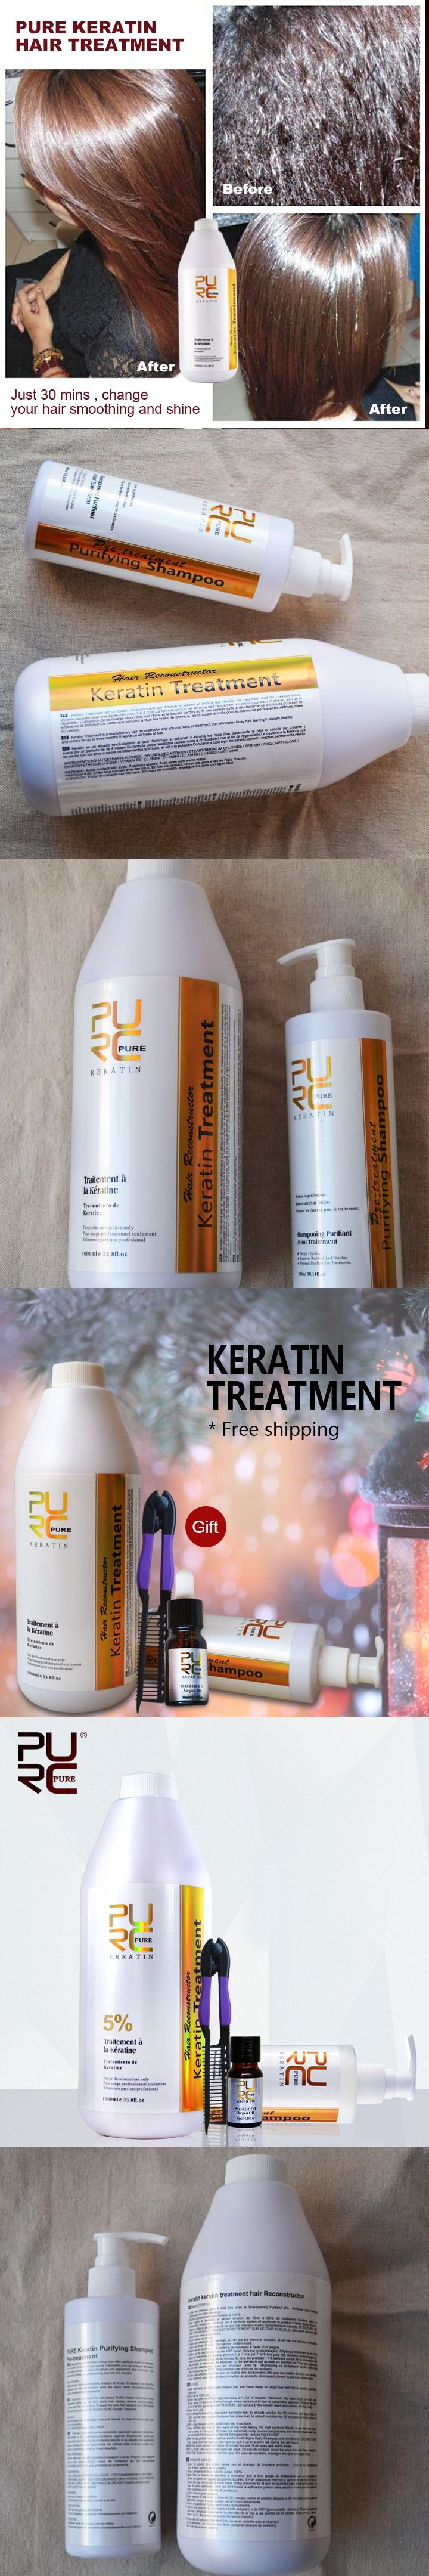 Brazilian keratin hair treatment formalin 5% 1000ml  hair straightening and purifying shampoo  gifts free shipping